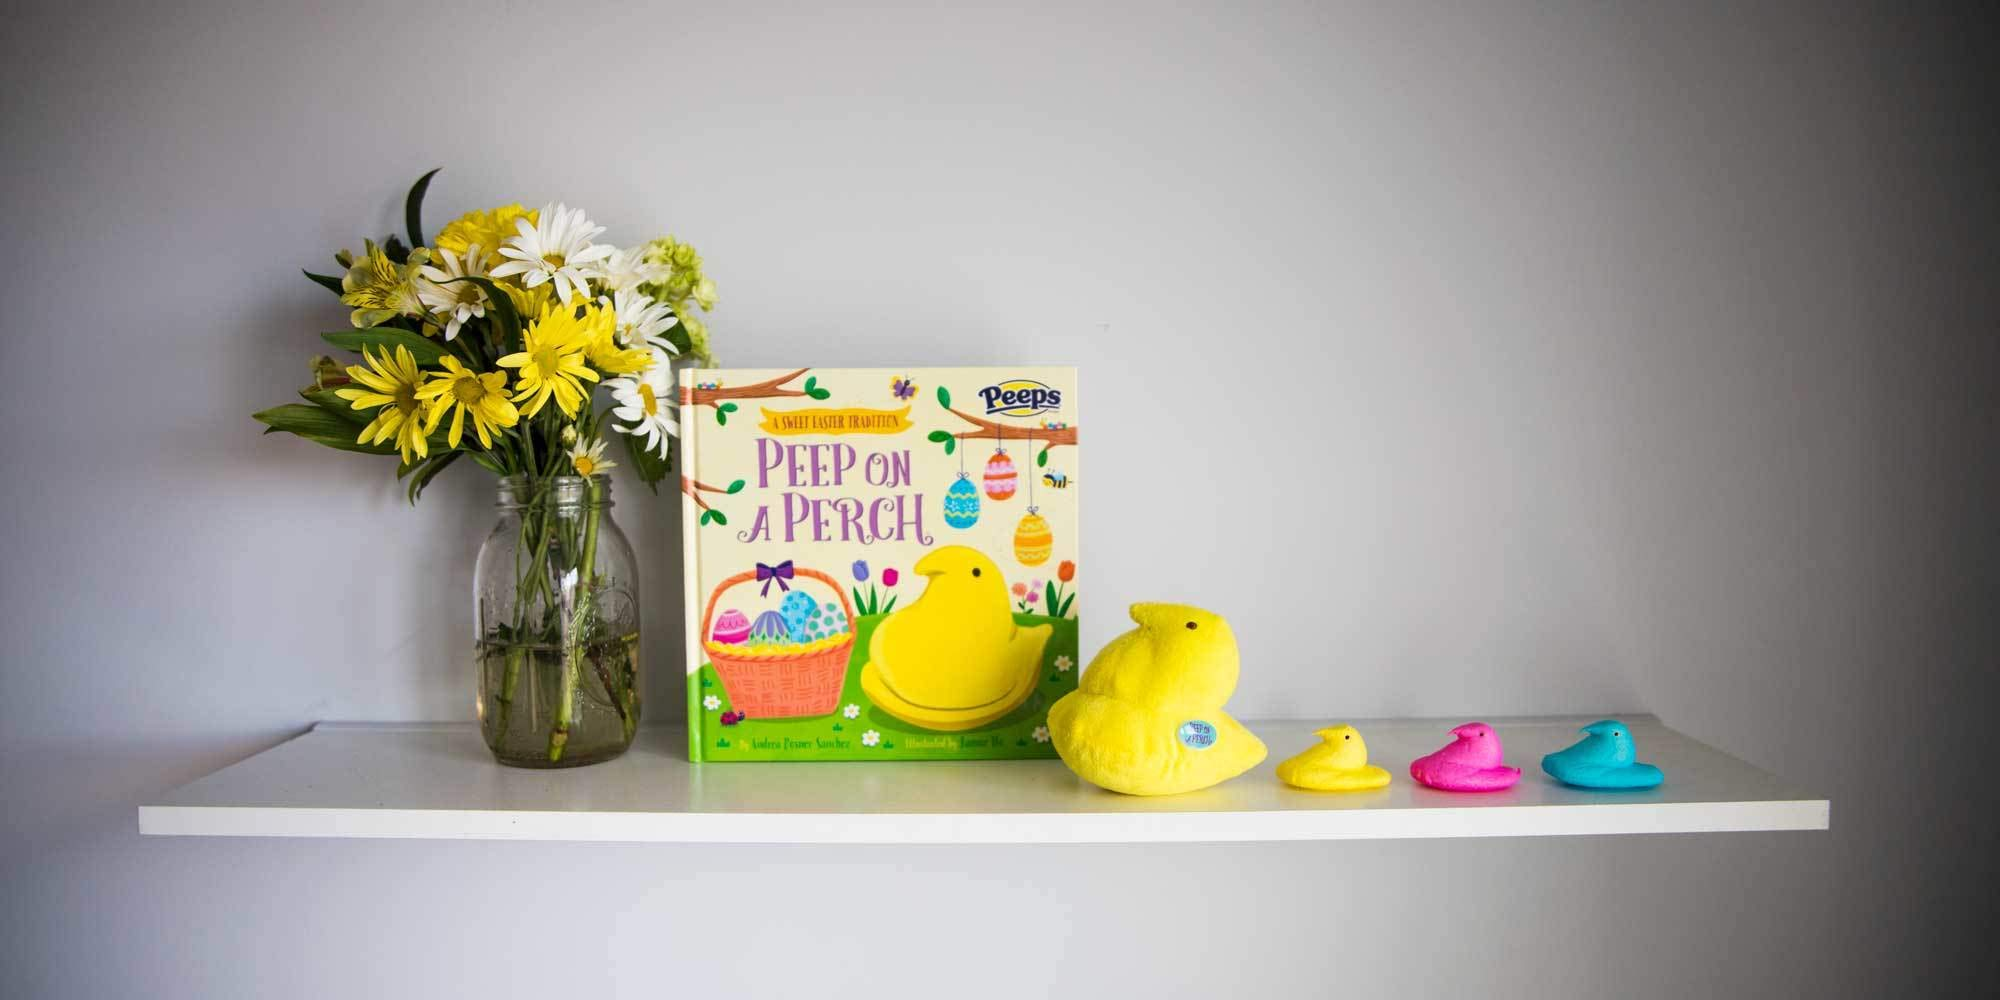 Peep on a Perch is the New Easter Tradition Your Kids Will Love